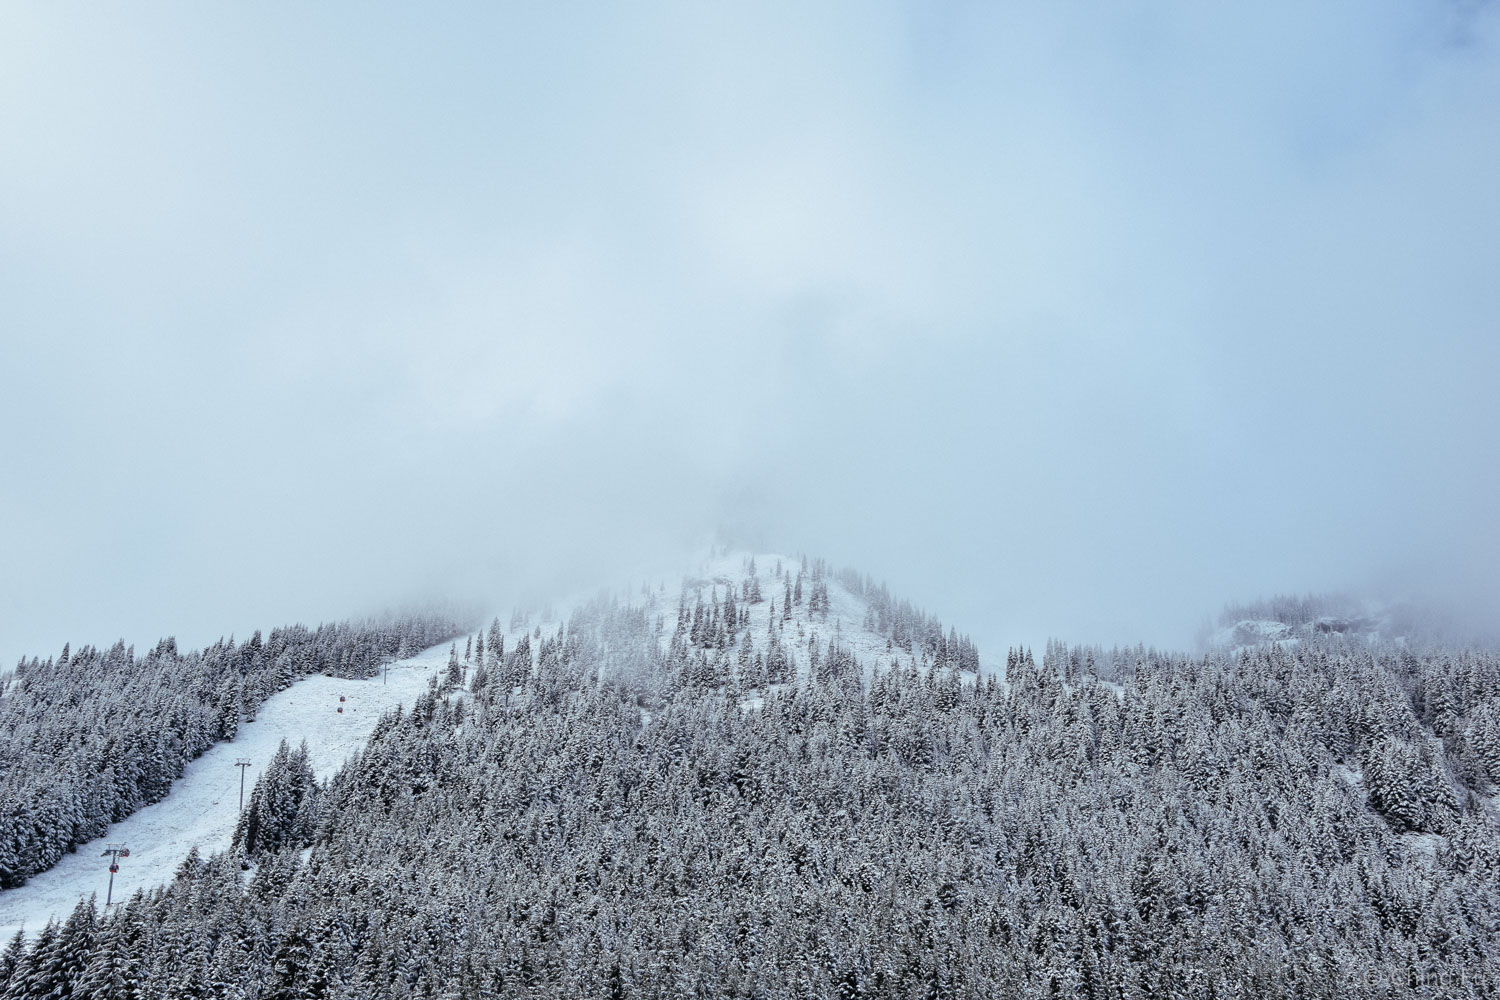 Finally getting snow on the slopes.